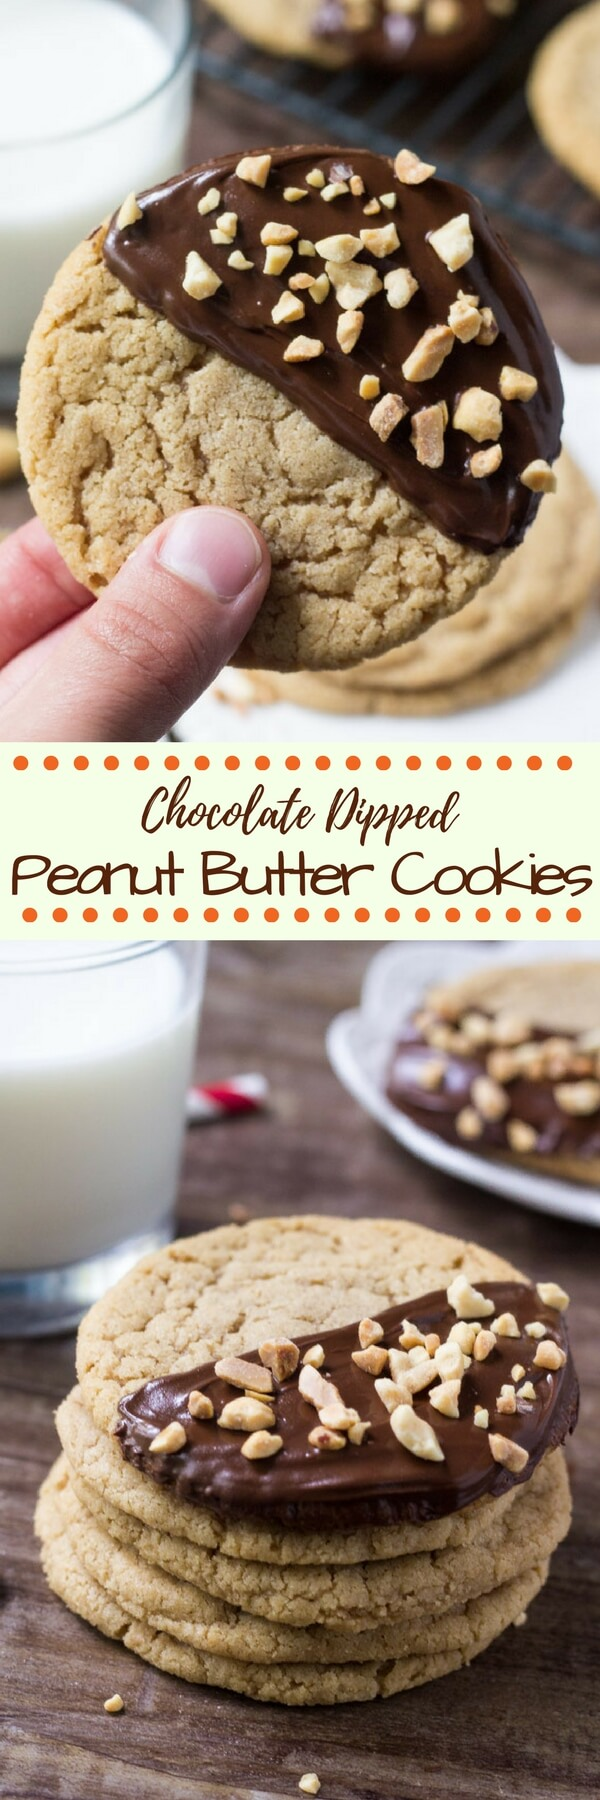 Soft and chewy peanut butter cookies dipped in chocolate and sprinkled with peanuts. If you're looking for a cookie recipe that's big on peanut butter - then these chocolate dipped peanut butter cookies are for you.  #peanutbutter #peanutbuttercookies #chocolatedip